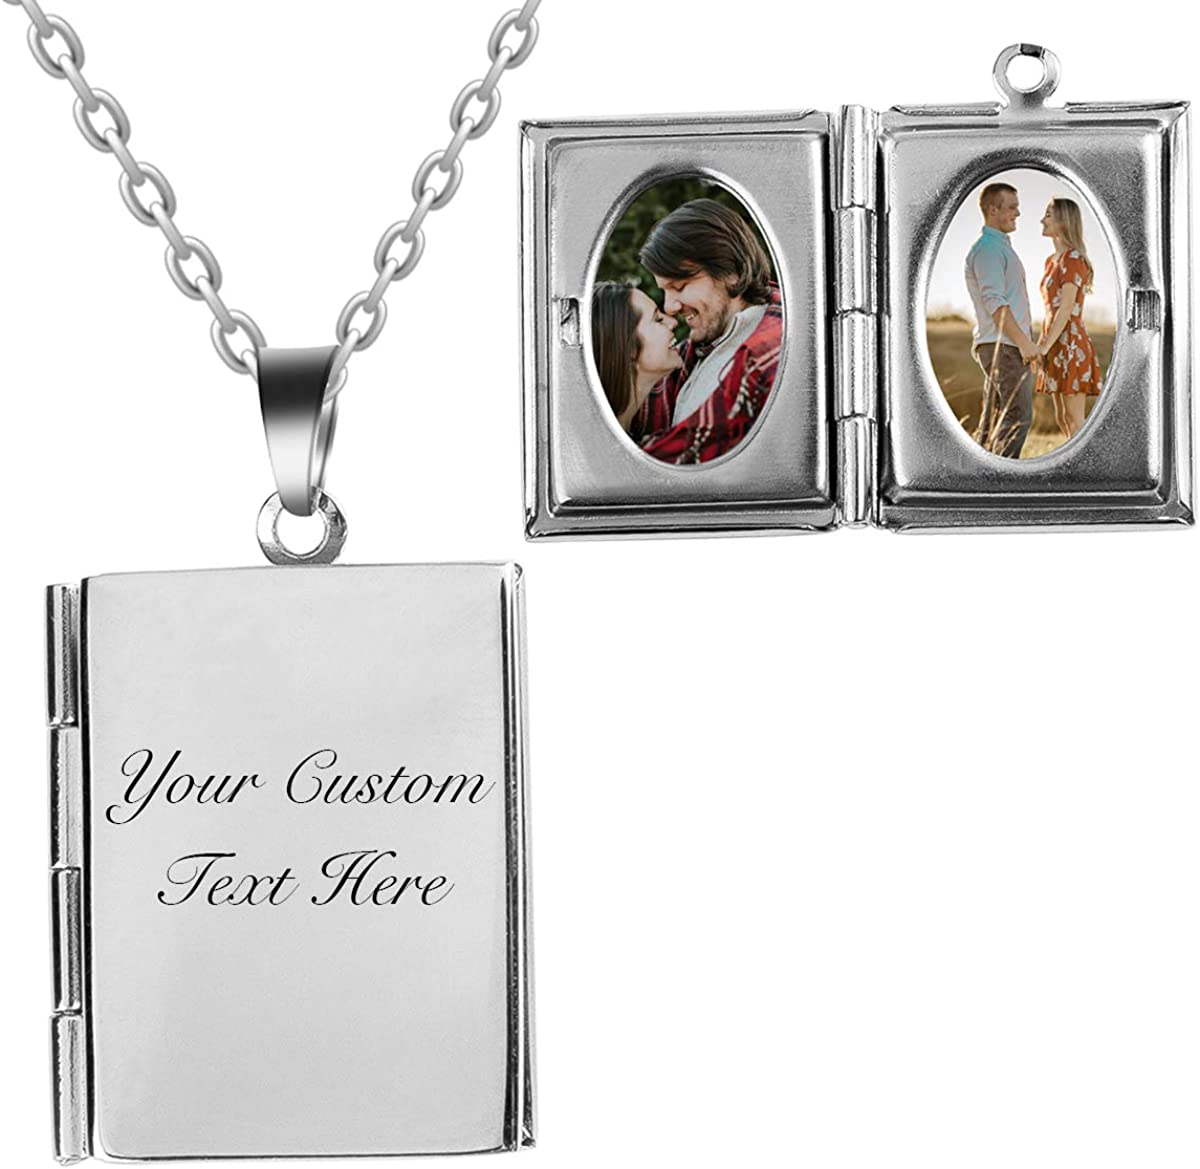 Fanery sue Personalized Locket Necklace That Holds Pictures Memory Photo Lockets Pendant Custom Any Photo and Text